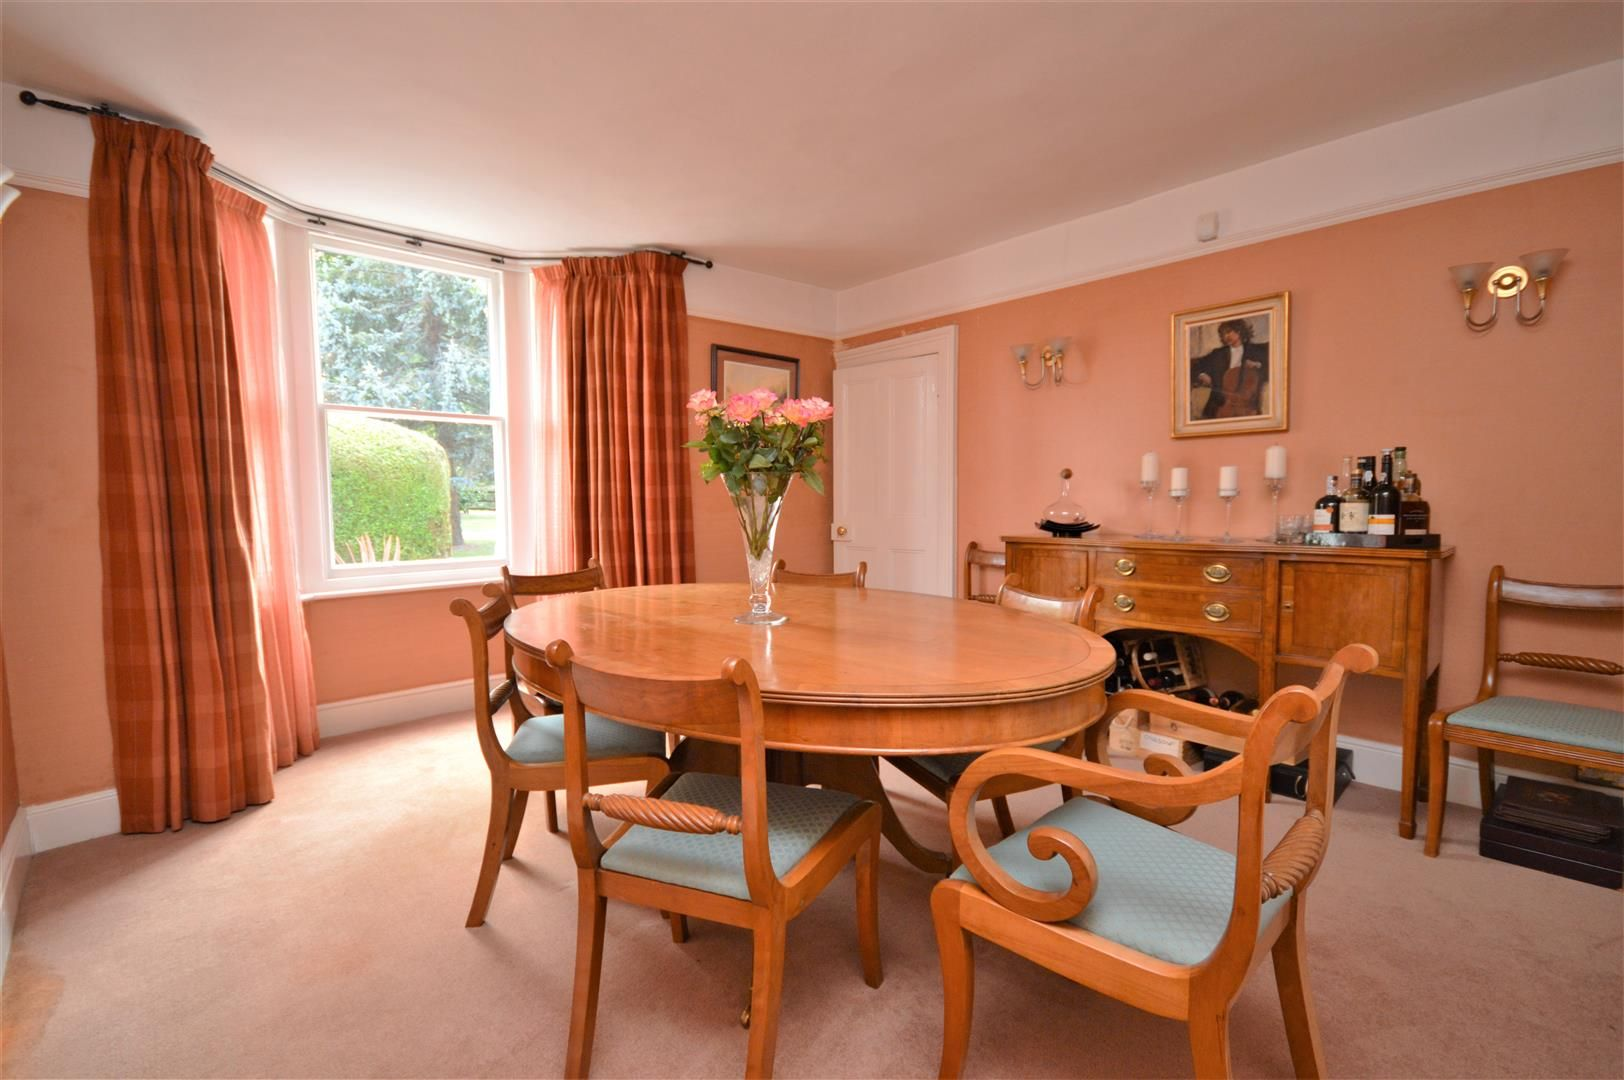 5 bed detached for sale in Stretton Sugwas  - Property Image 11